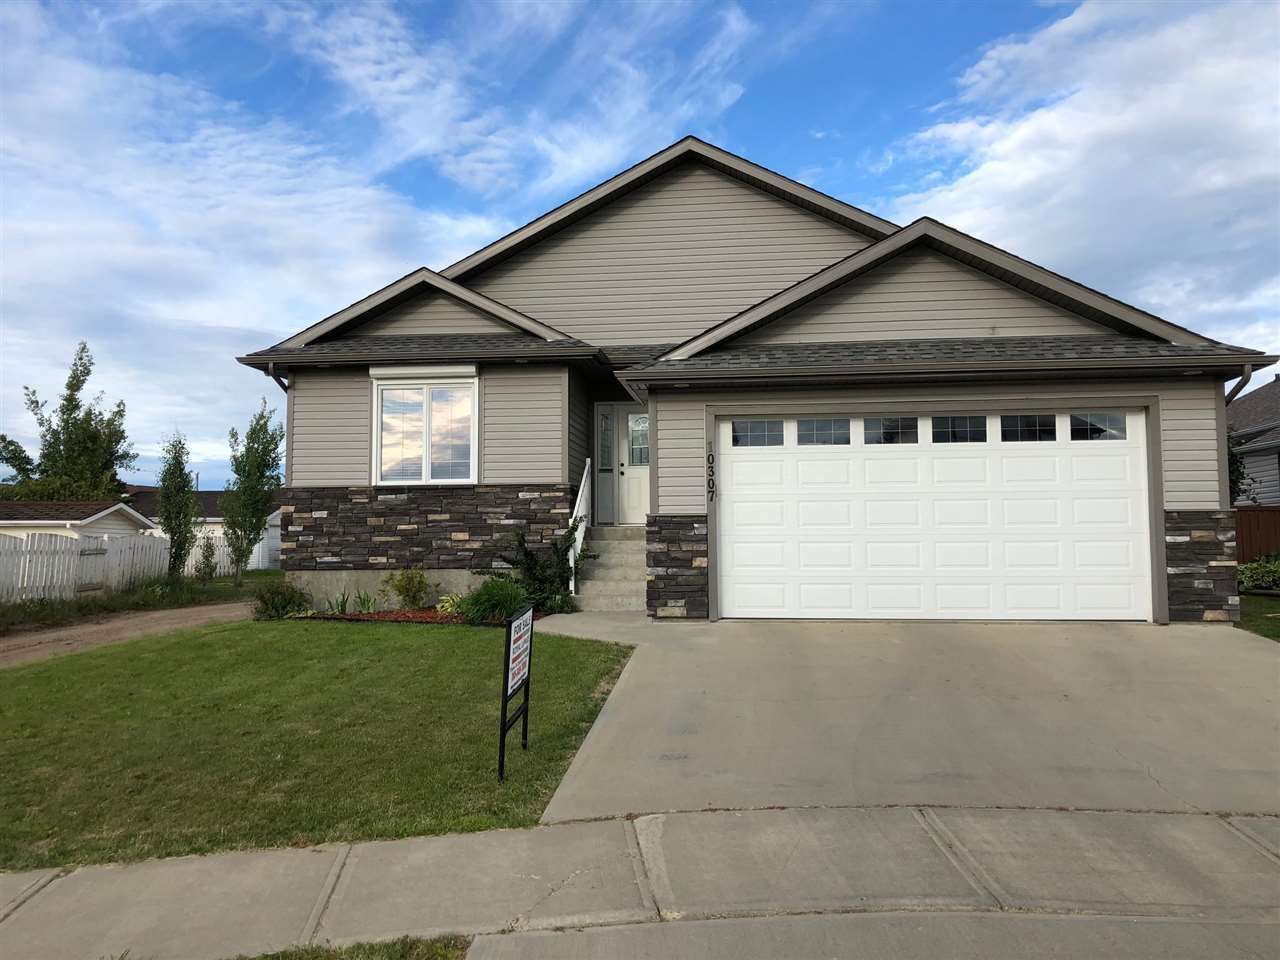 Main Photo: 10307 110 Avenue: Westlock House for sale : MLS®# E4132329